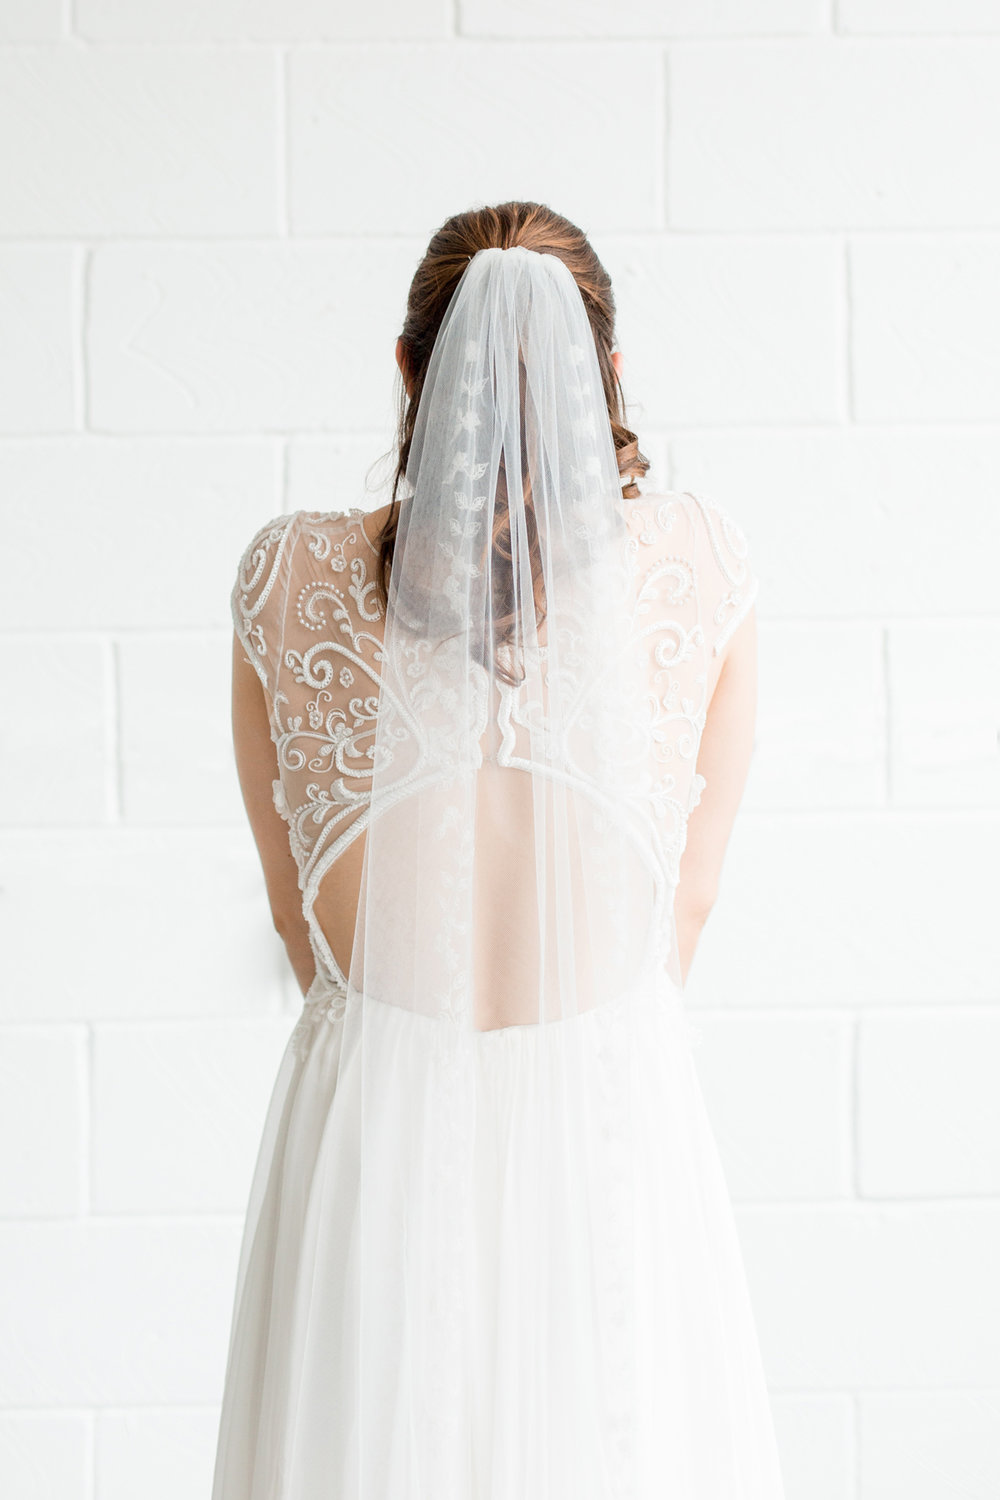 Boho Wedding Dress - Industrial Warehouse Wedding -- The Overwhelmed Bride - Wedding Blog